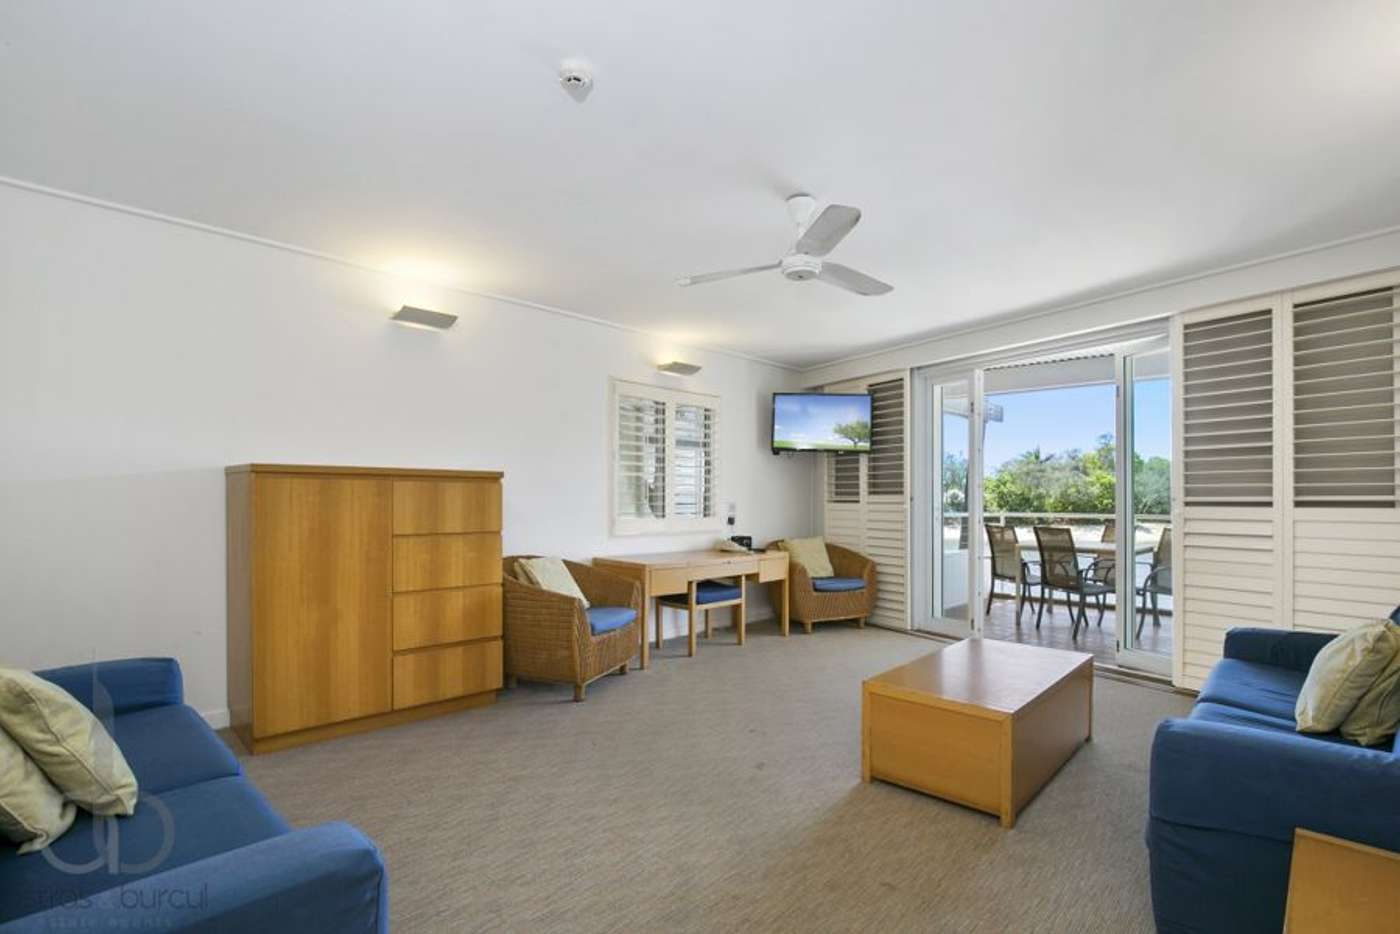 Sixth view of Homely apartment listing, 3601 and 3602 Lagoon Street  Couran Cove, South Stradbroke QLD 4216